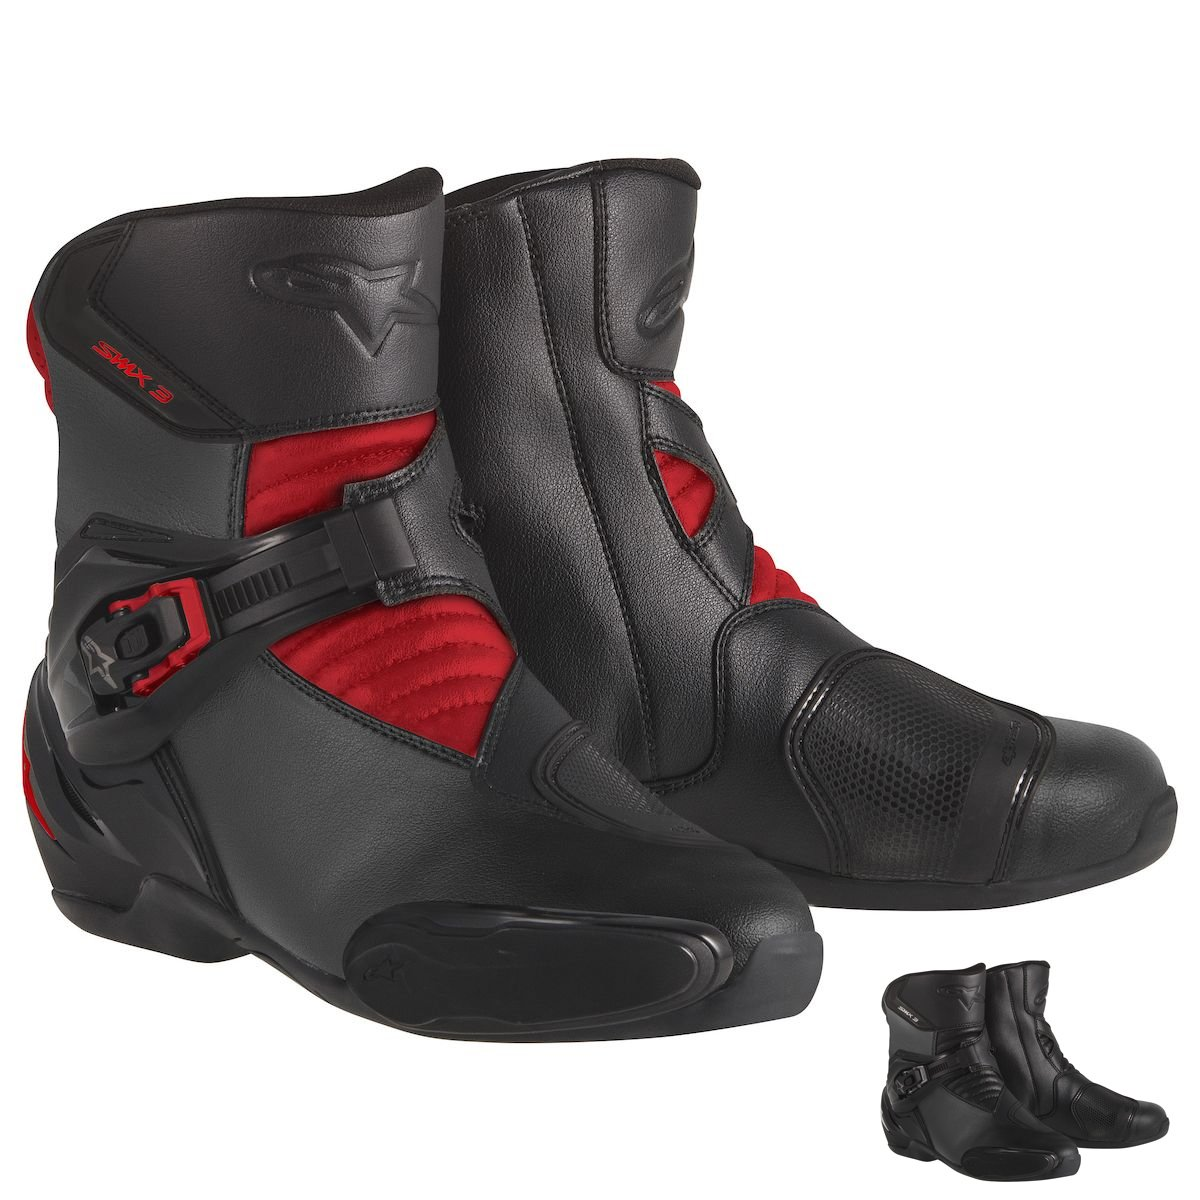 Alpinestars SMX-3 Men's Motorcycle Street Boots (Black/Red, EU Size 38)